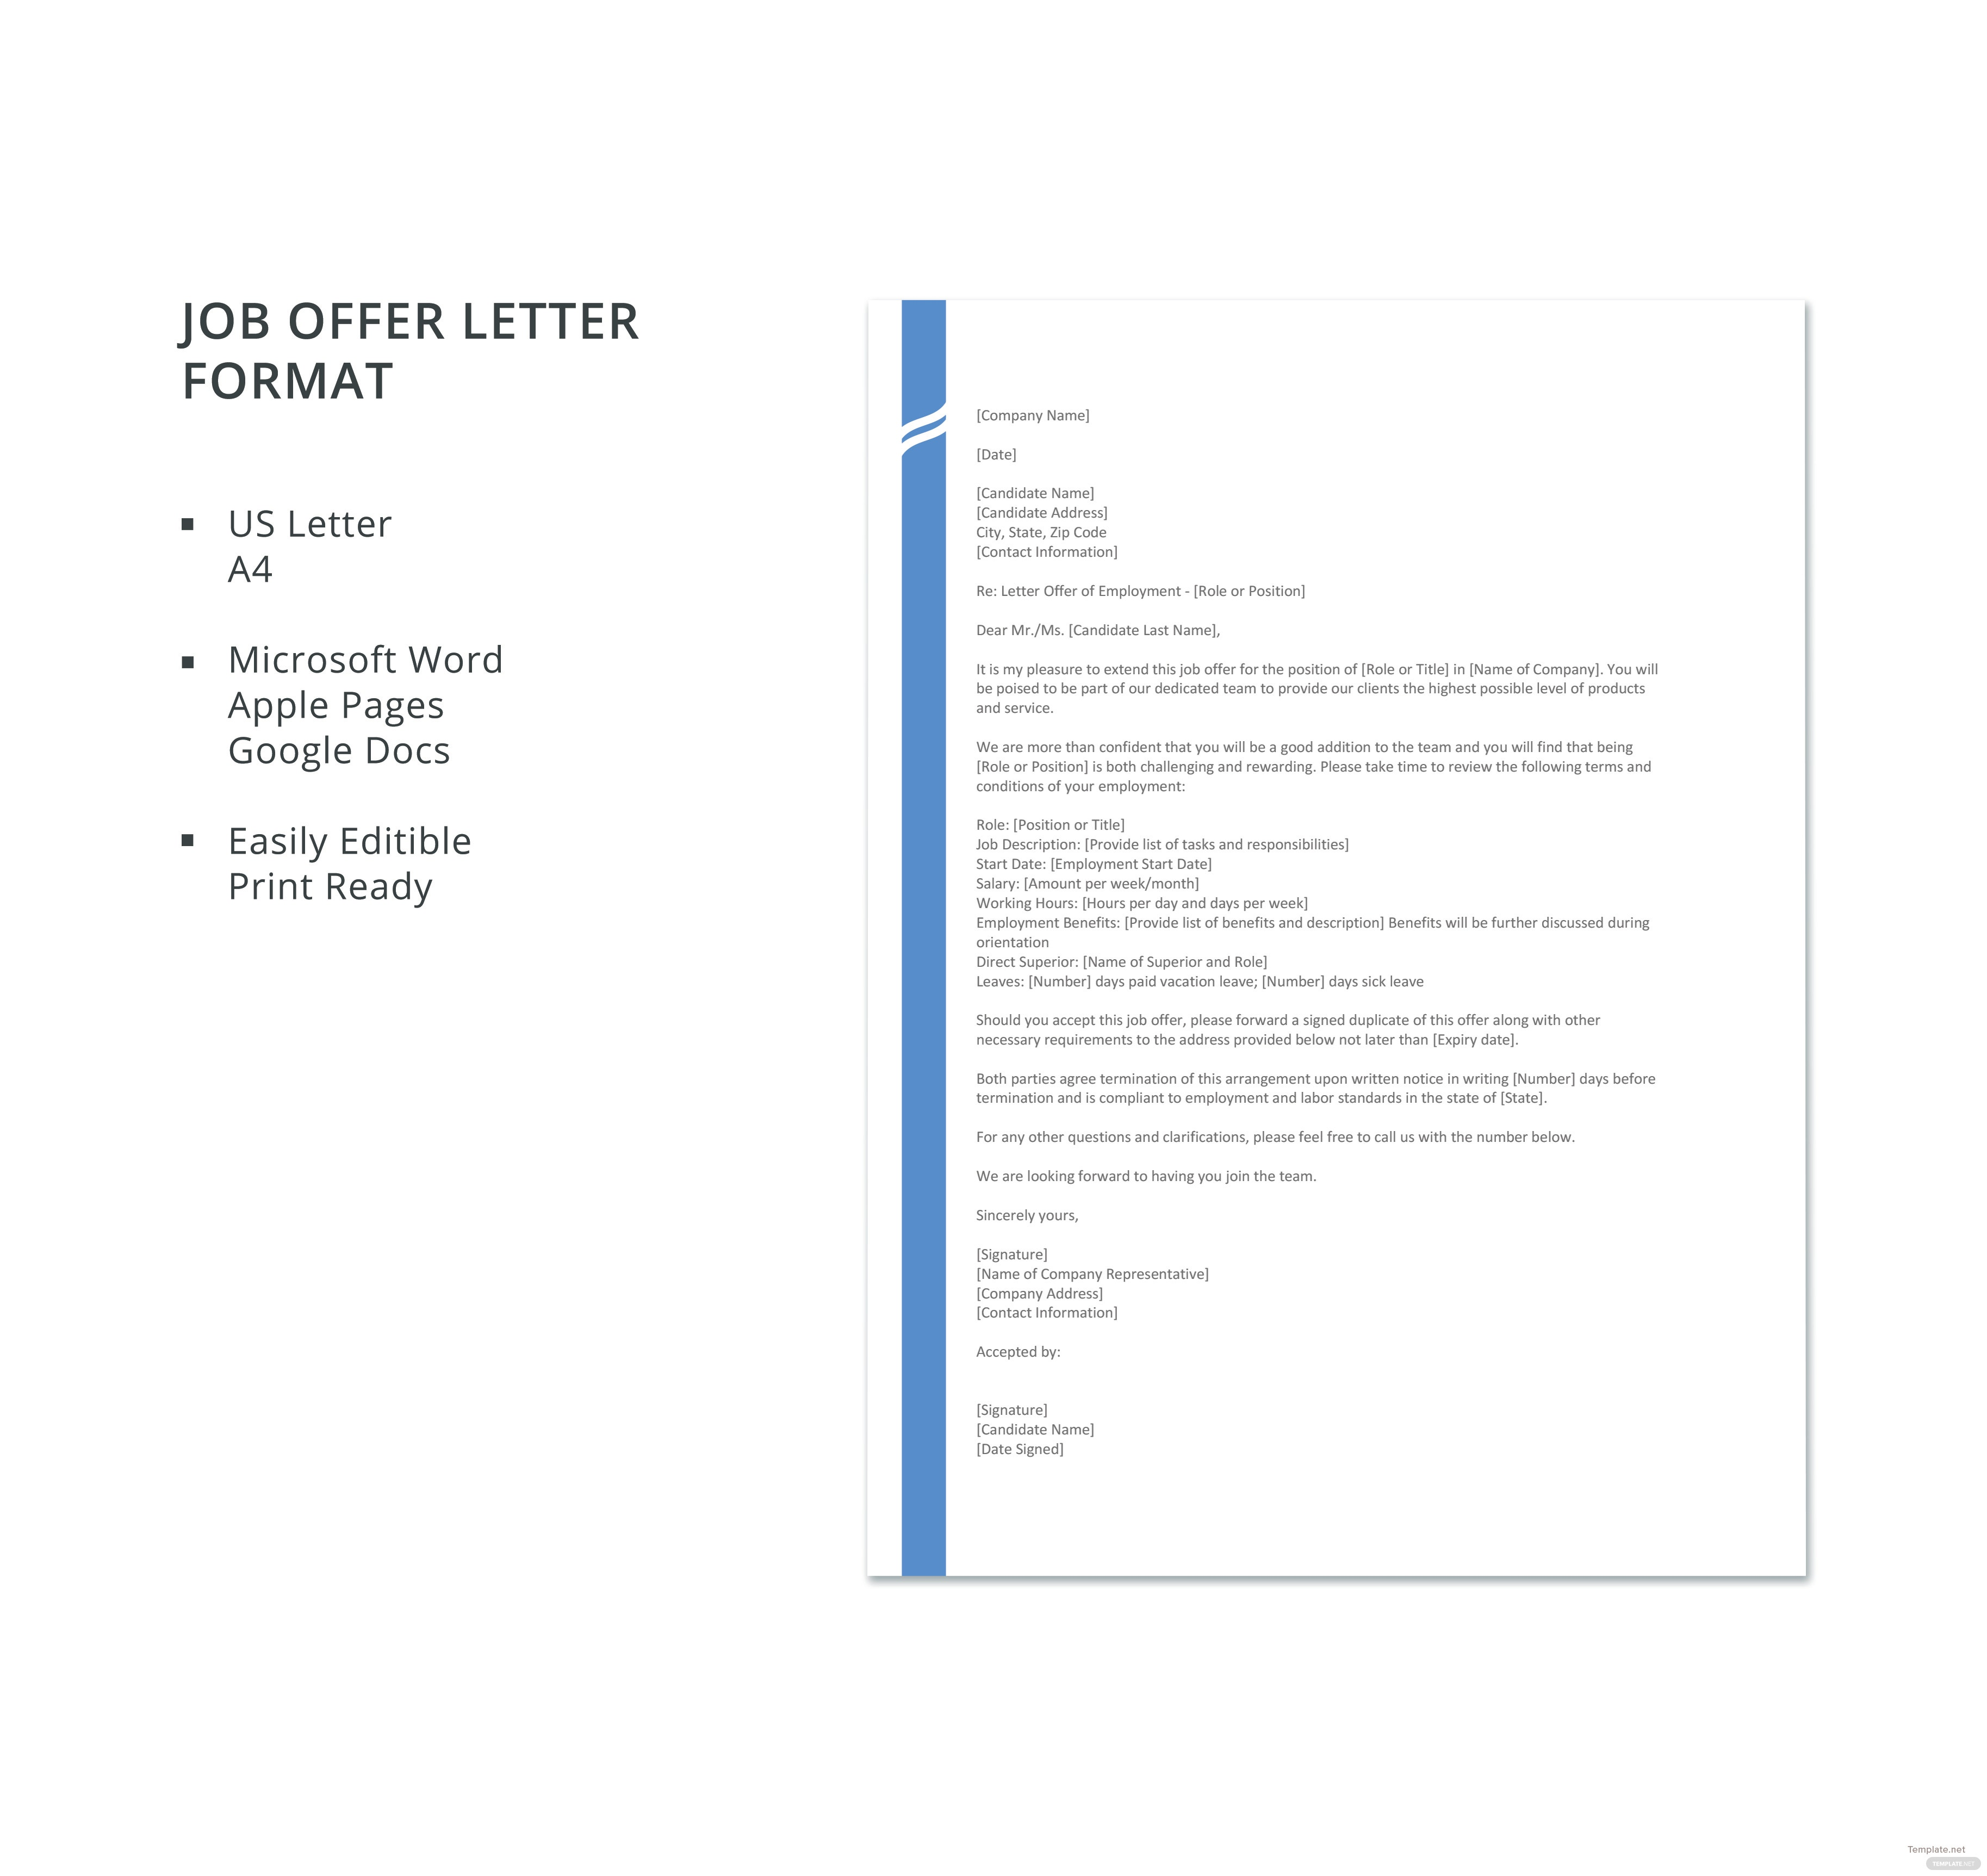 Free job offer letter format in microsoft word apple pages google click to see full template job offer letter format spiritdancerdesigns Gallery